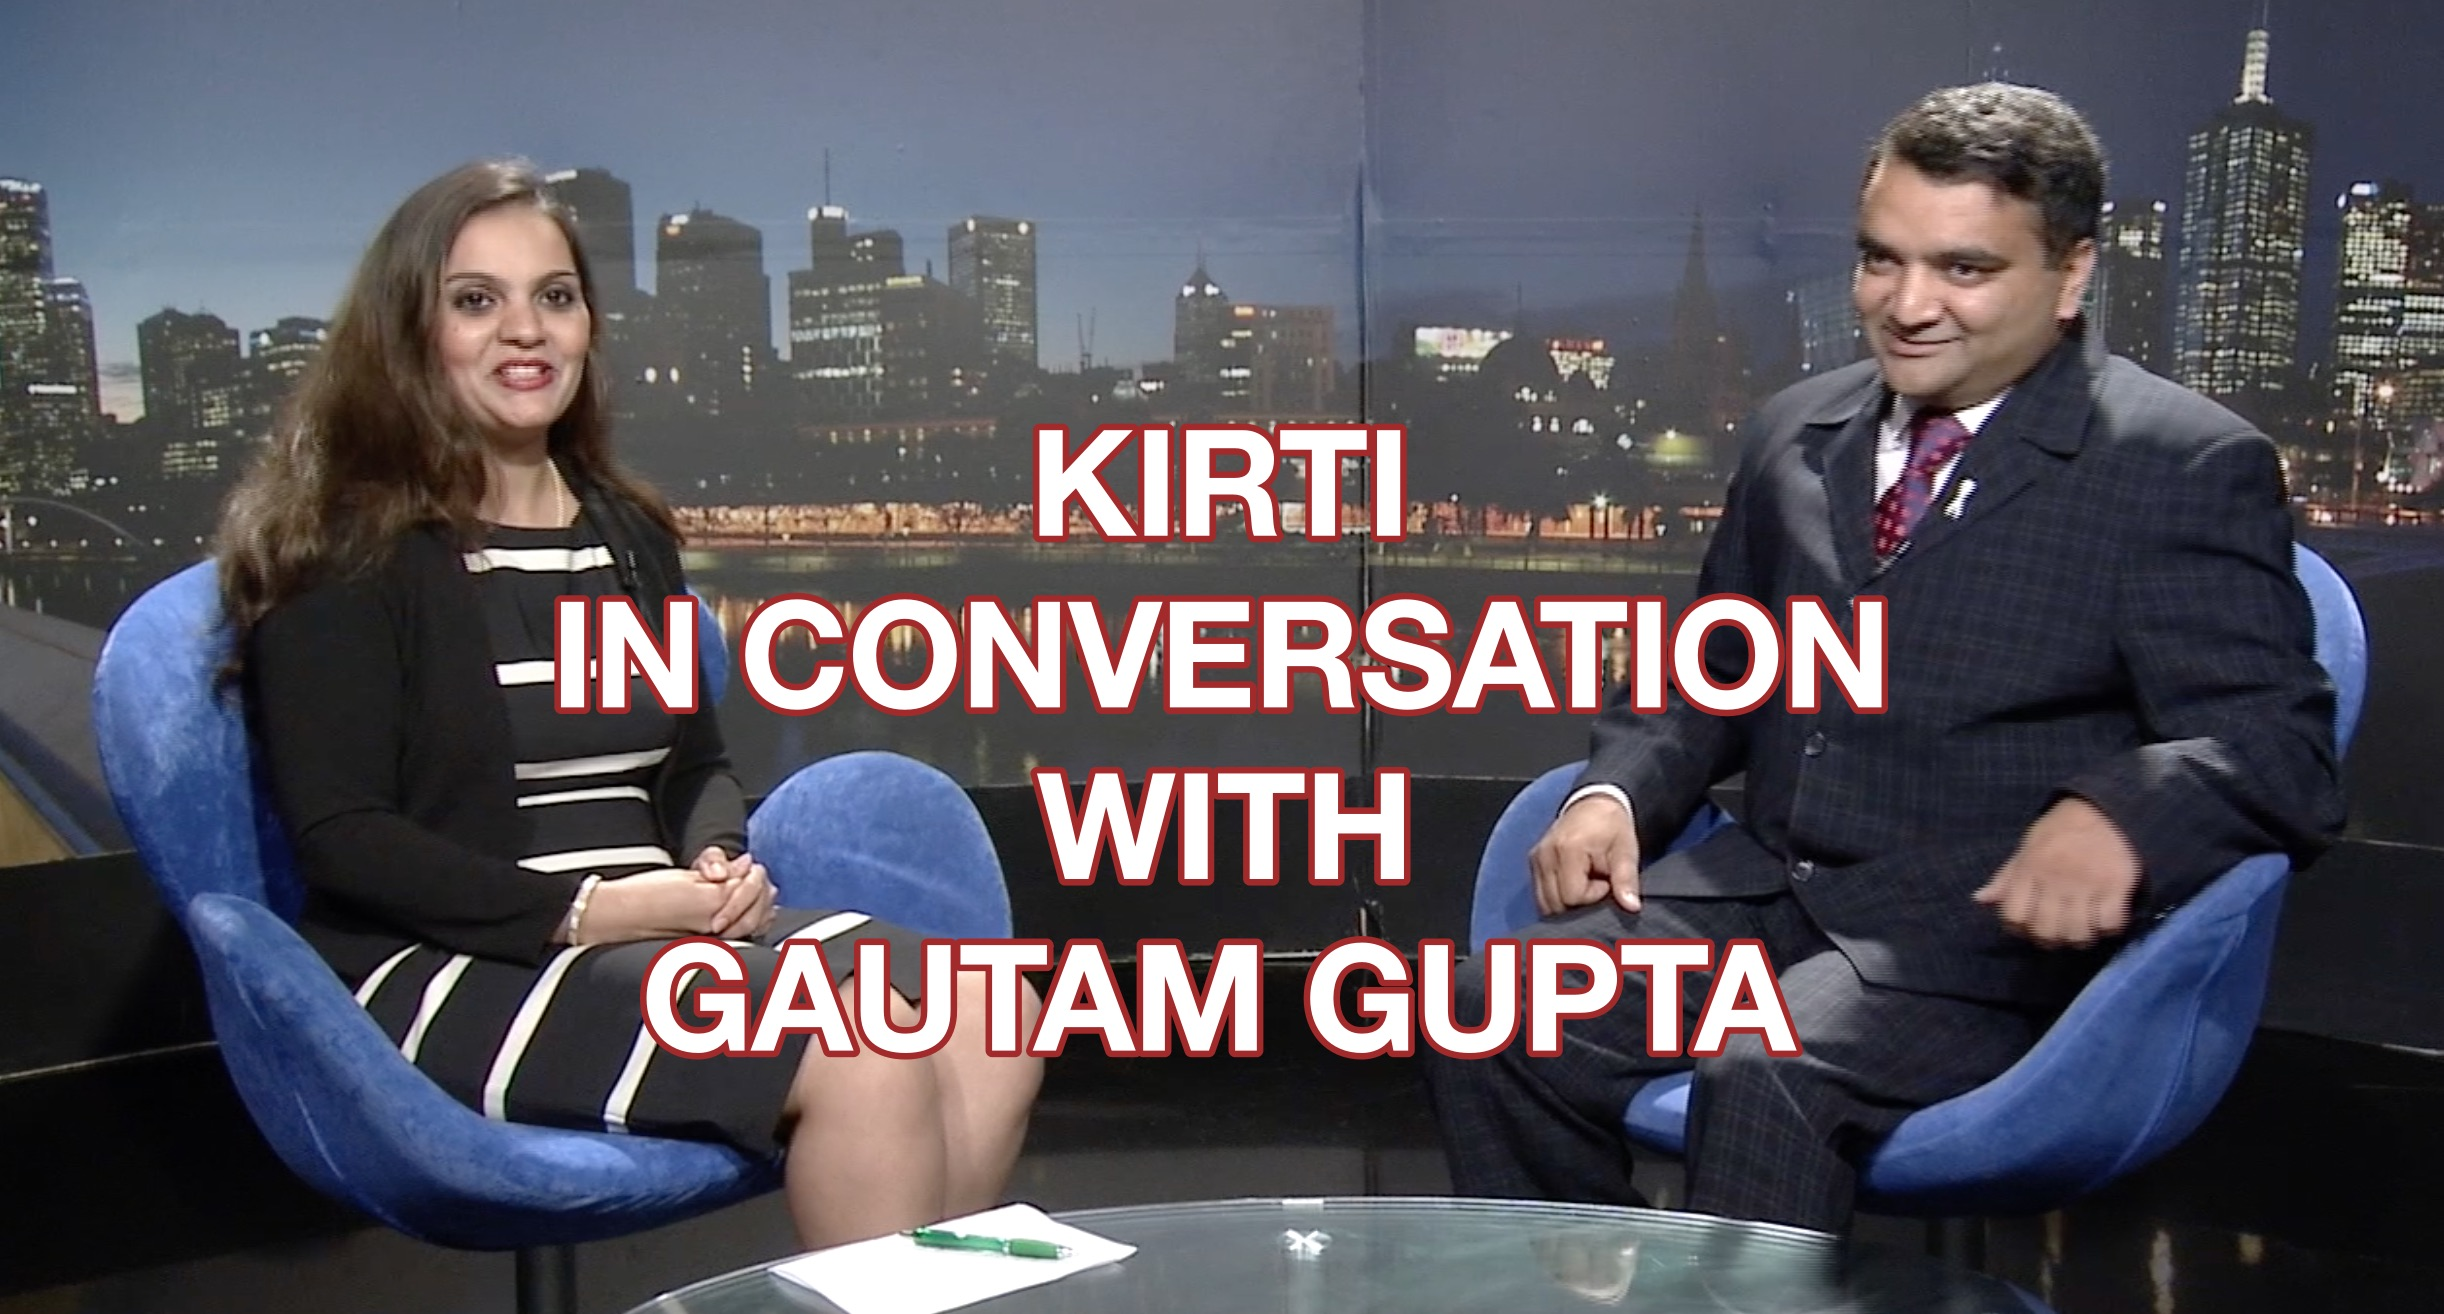 Kirti in Conversation with Gautam